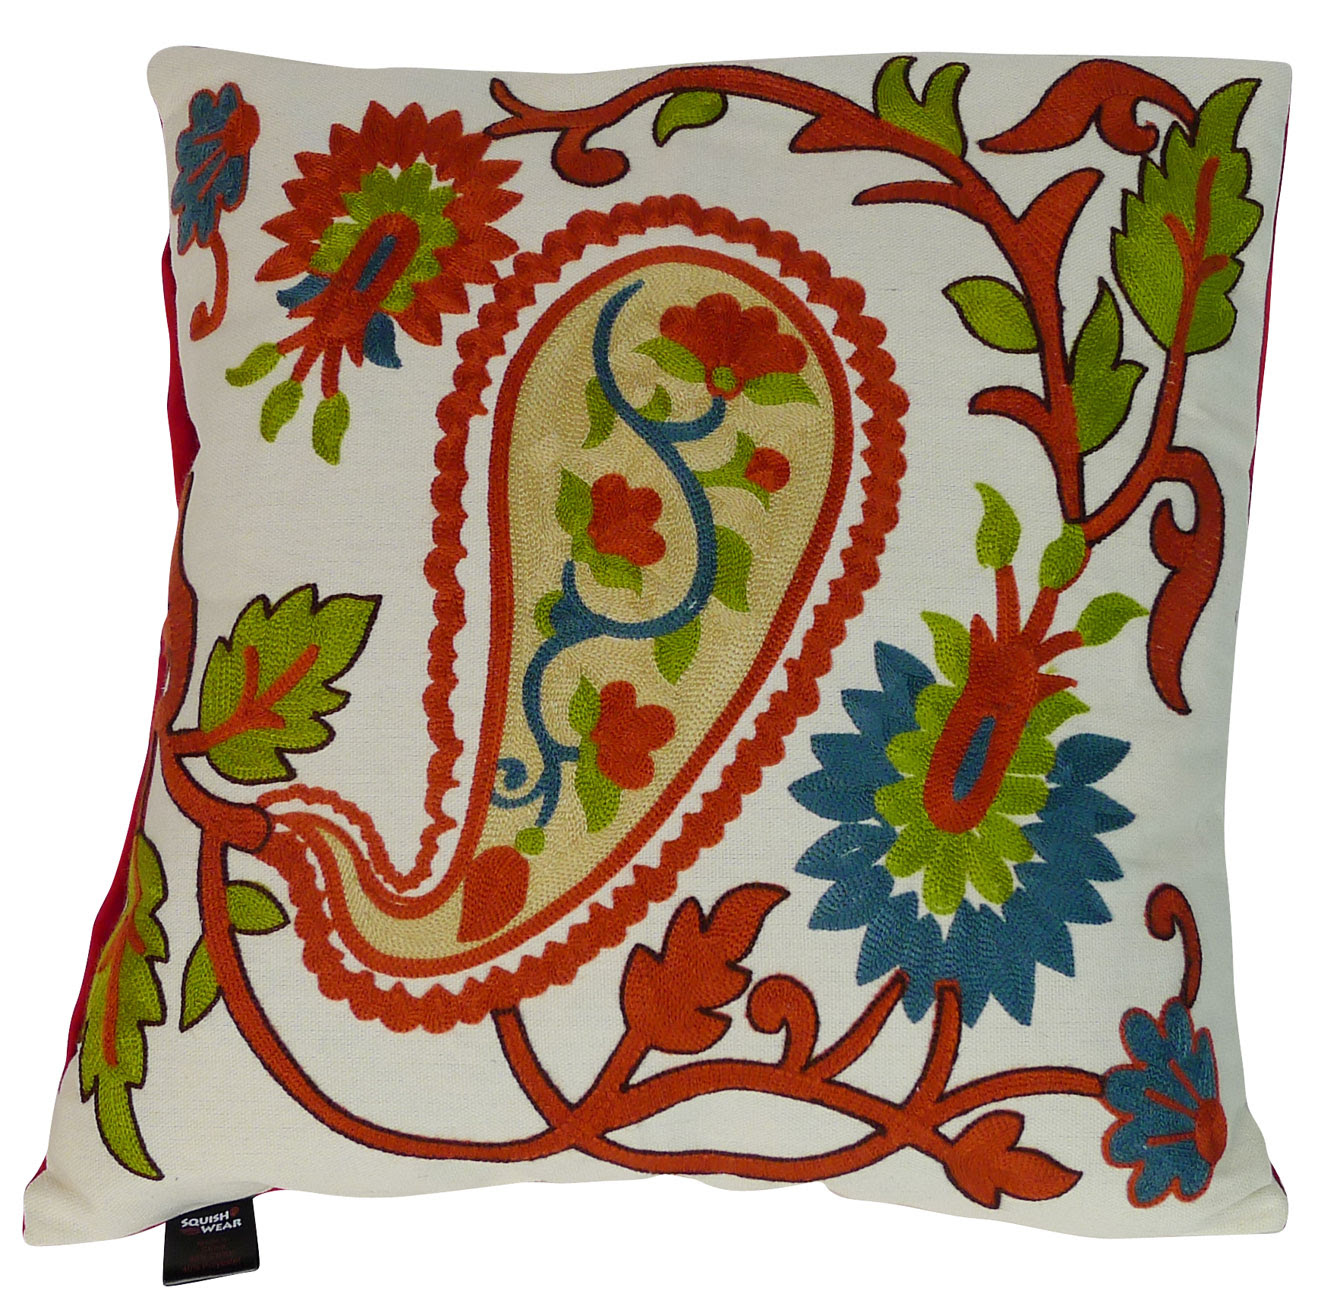 Squish Embroidered Throw Pillows